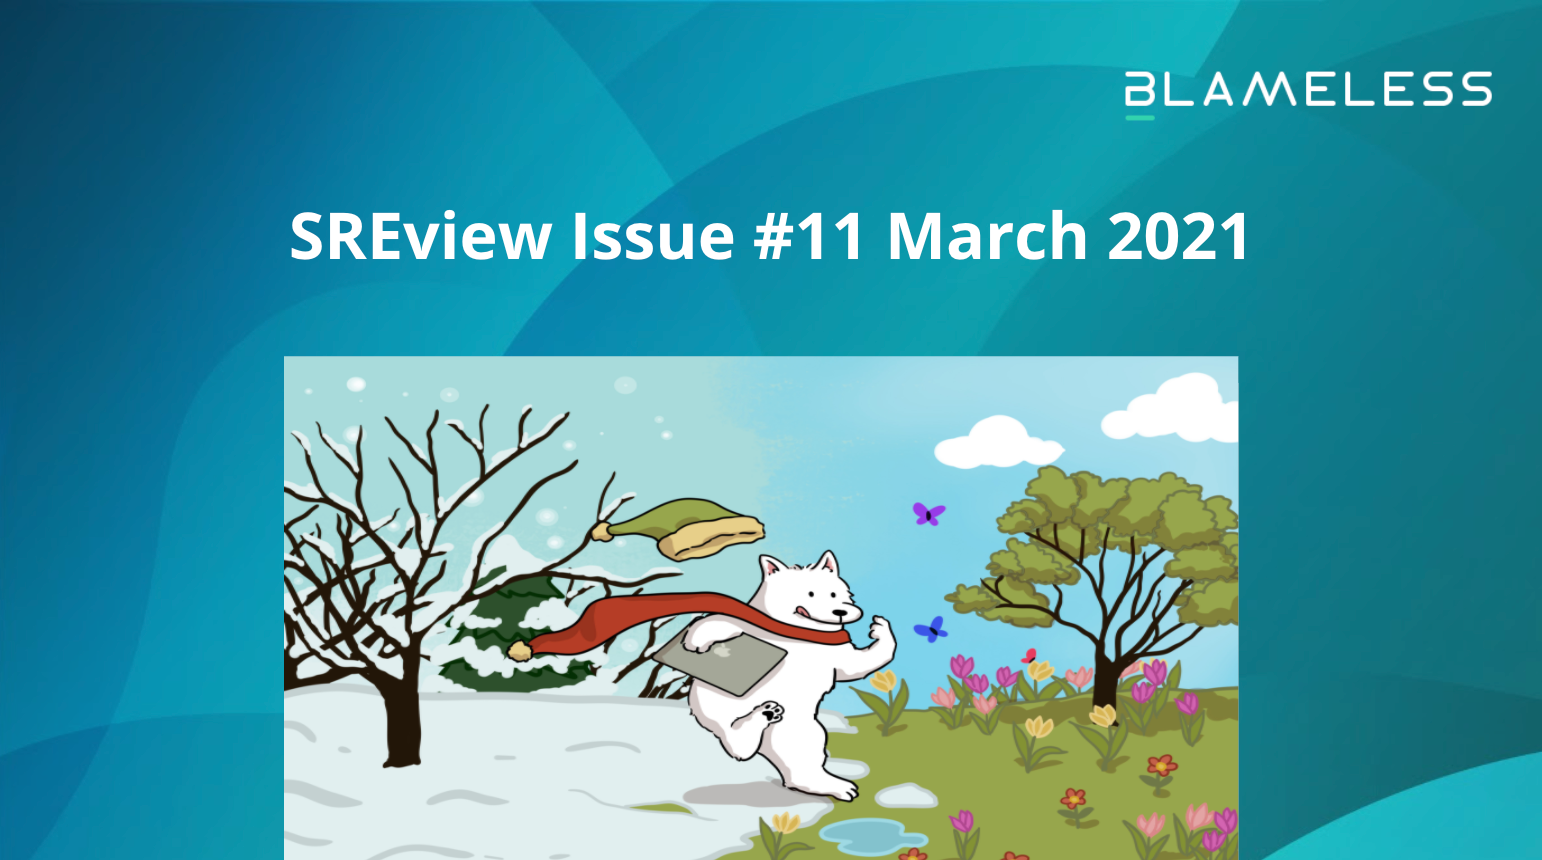 SREview Issue #11 March 2021